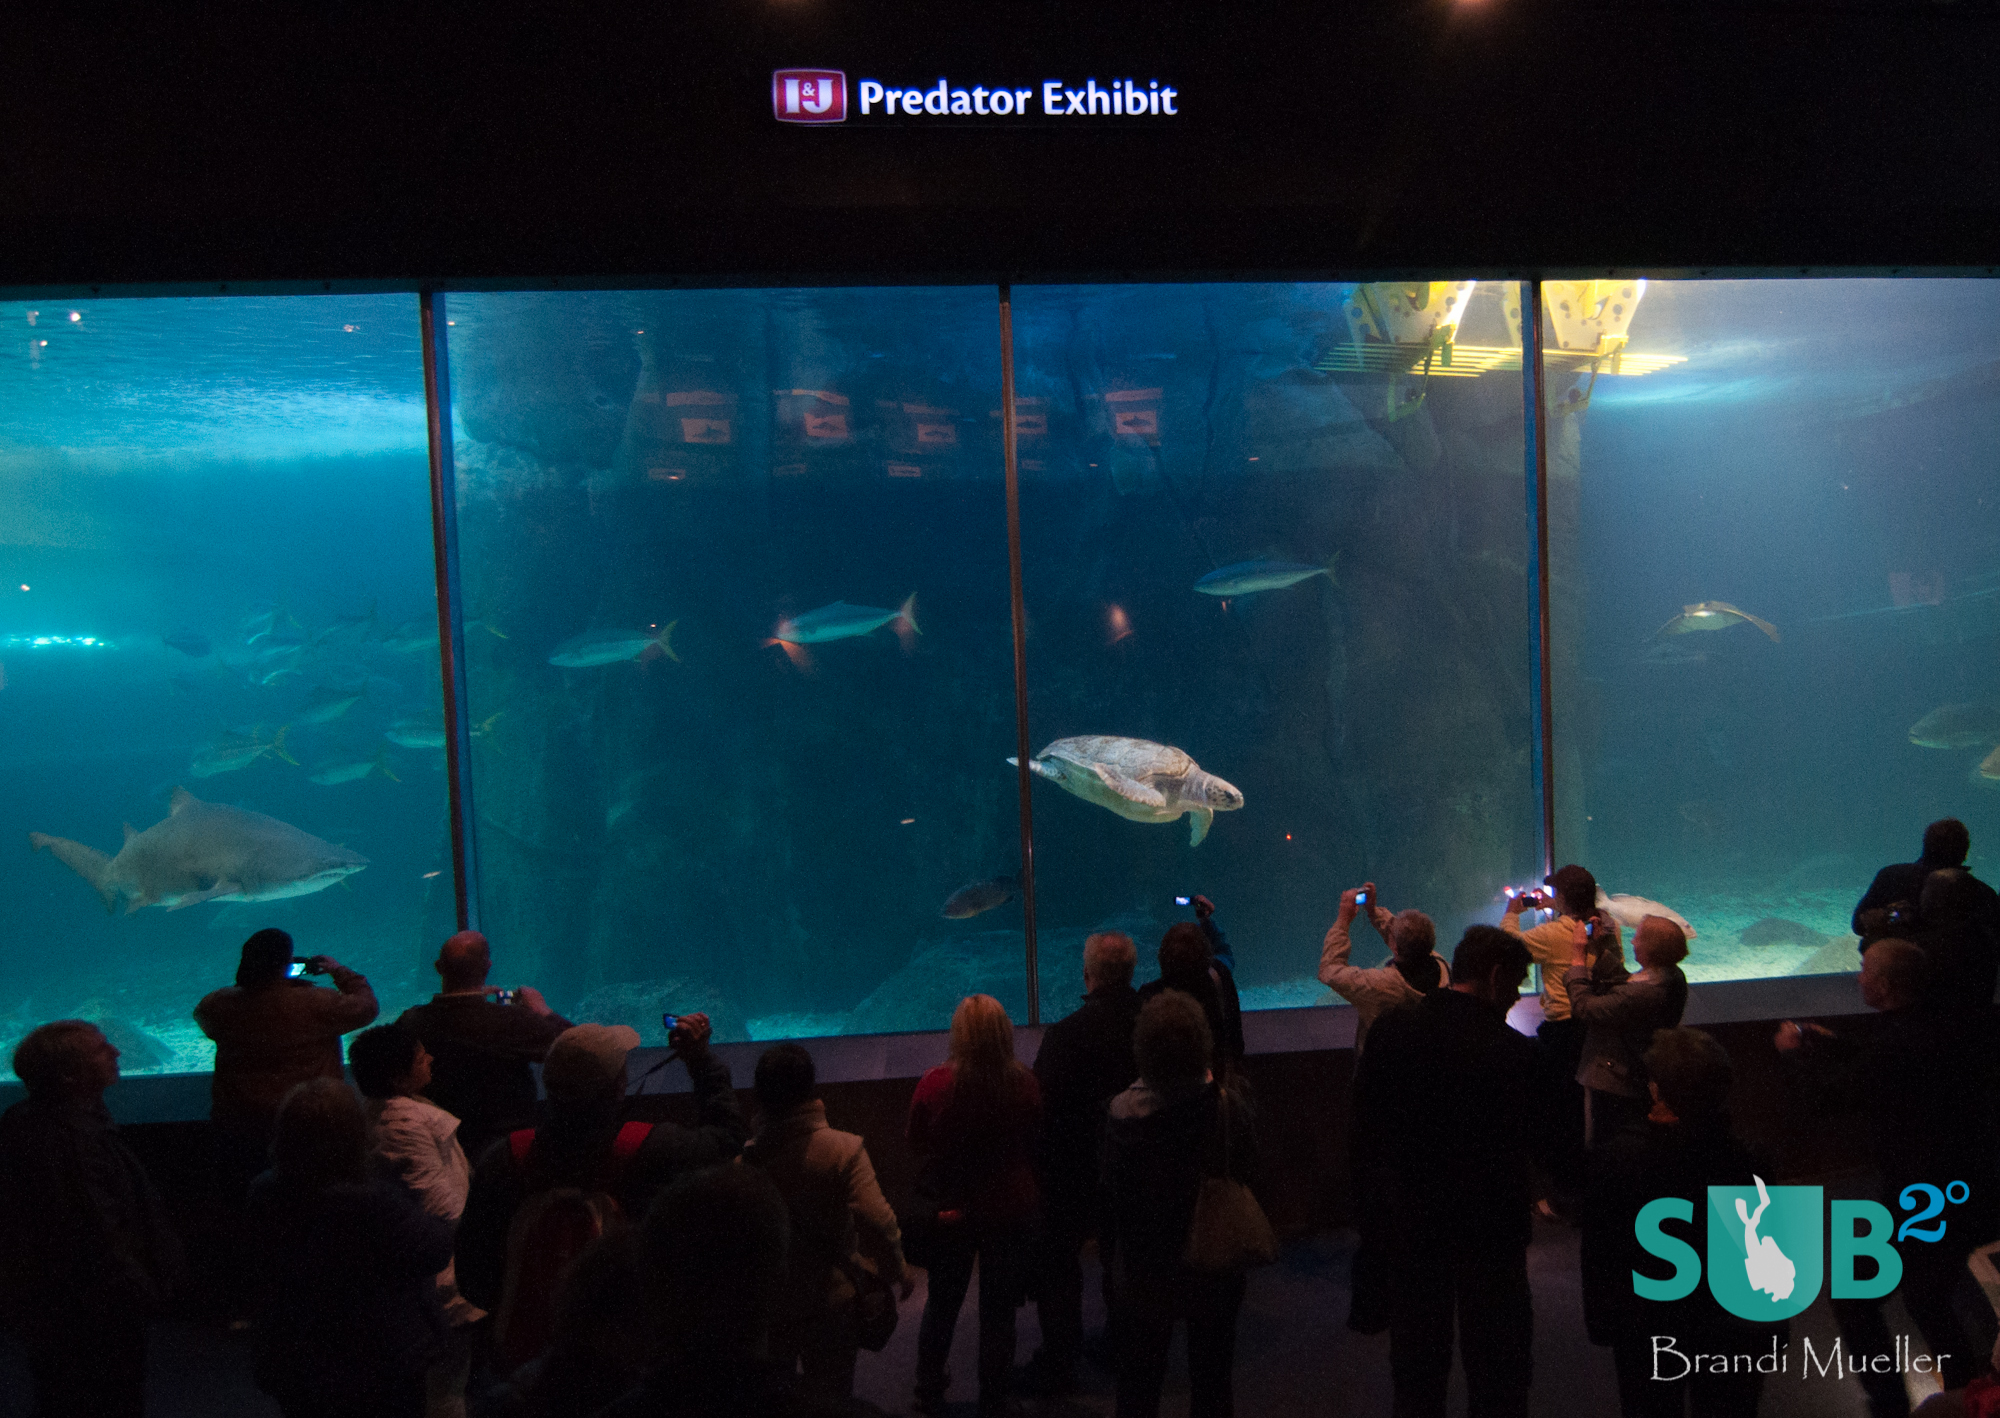 Visitors looking in at the Predator Exhibit at the Two Oceans Aquarium in Cape Town South Africa.